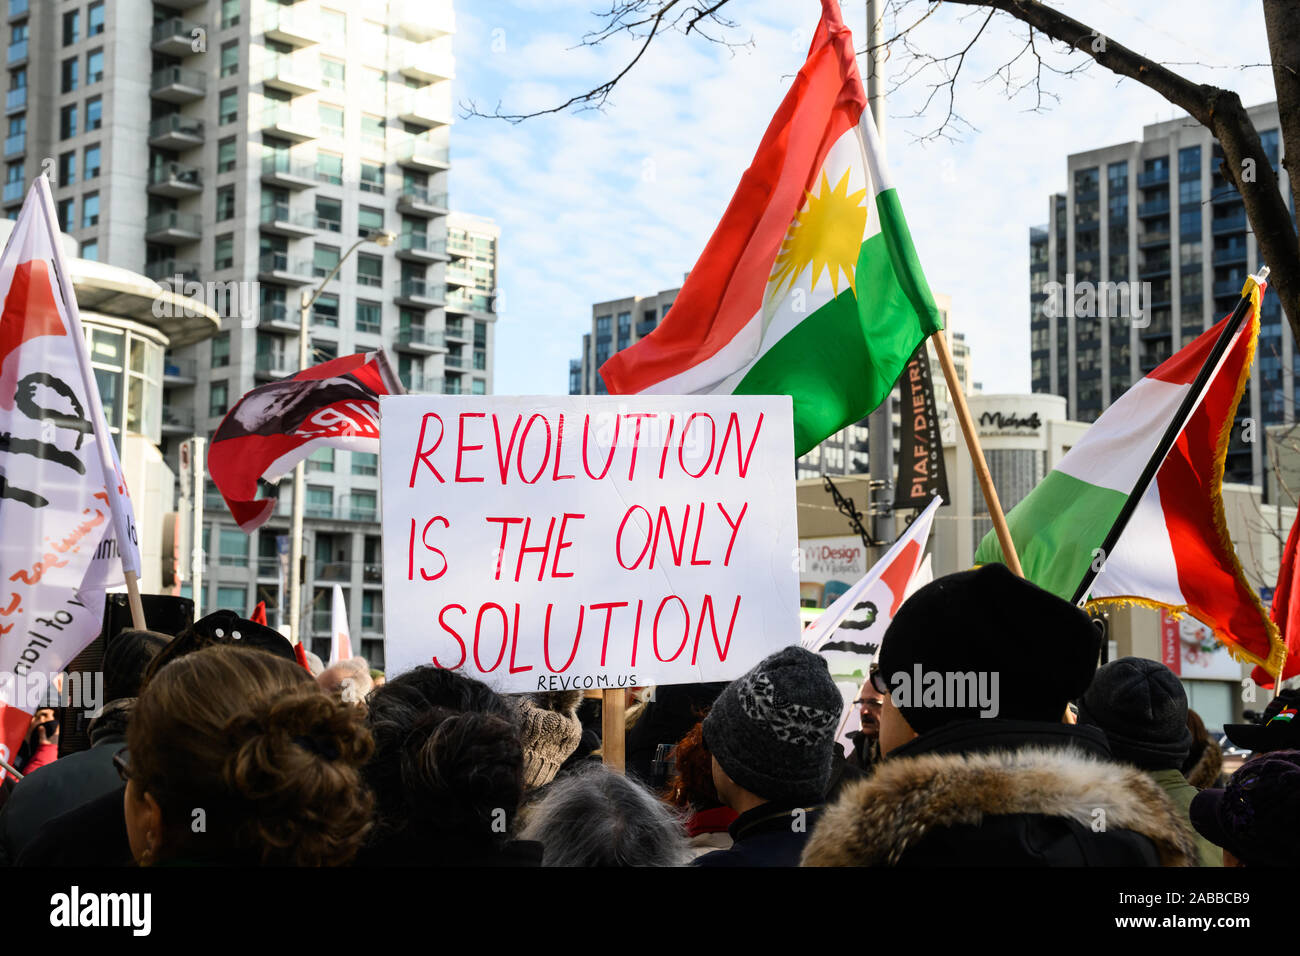 Torontonians gather at Mel Lastman Square to show support for the protesters in Iran on November 23, 2019 while Kurdish and Shir o Khorshid flags wave Stock Photo